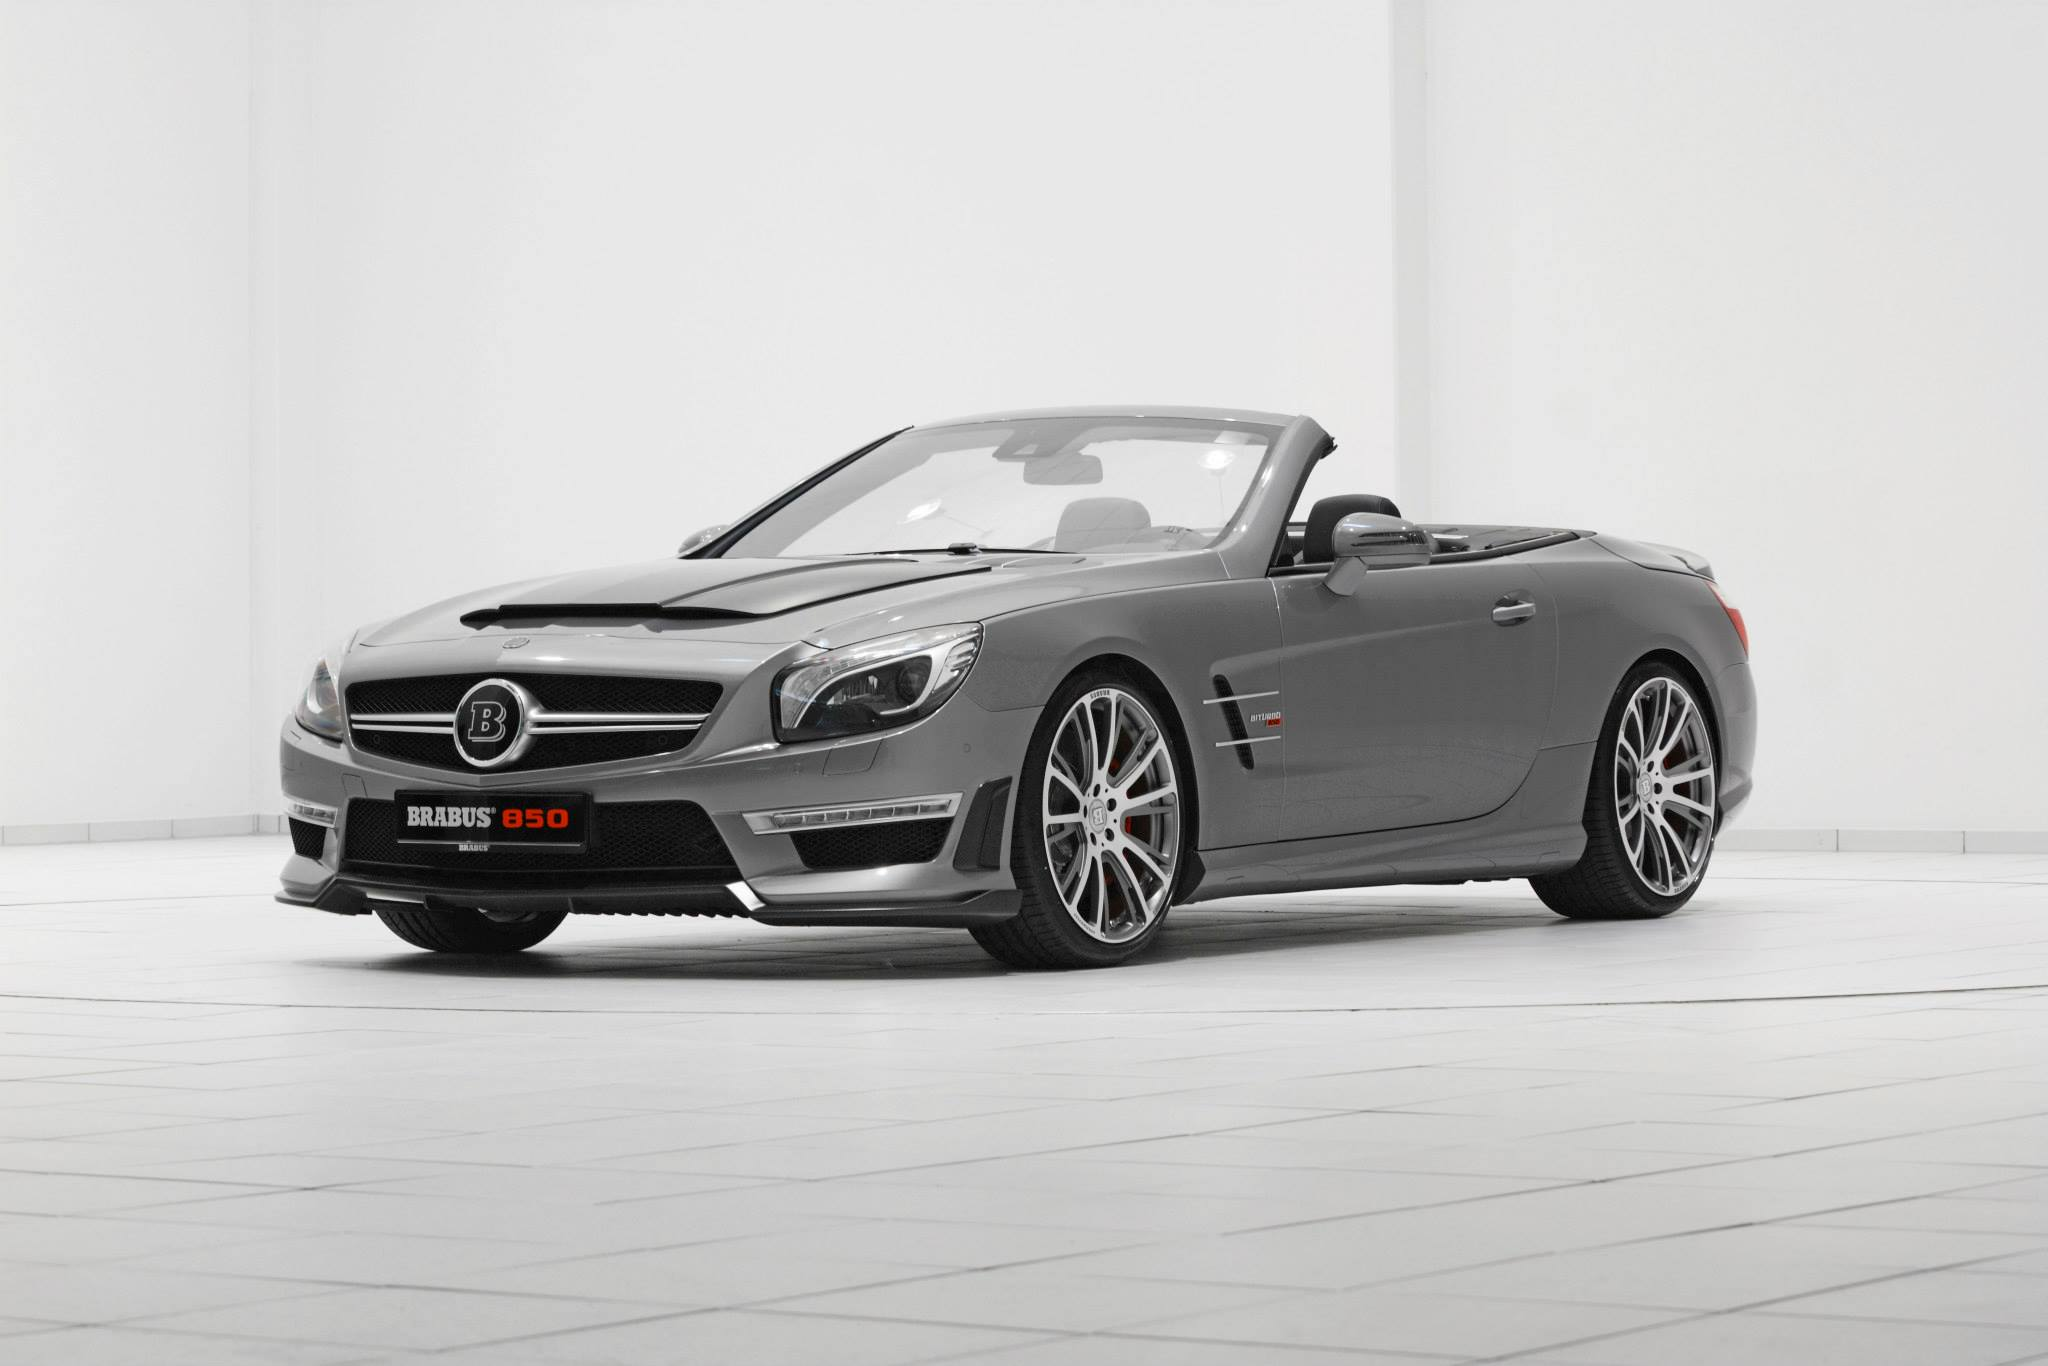 Brabus 850 mercedes benz sl63 amg 850hp and 1450nm for Mercedes benz 850